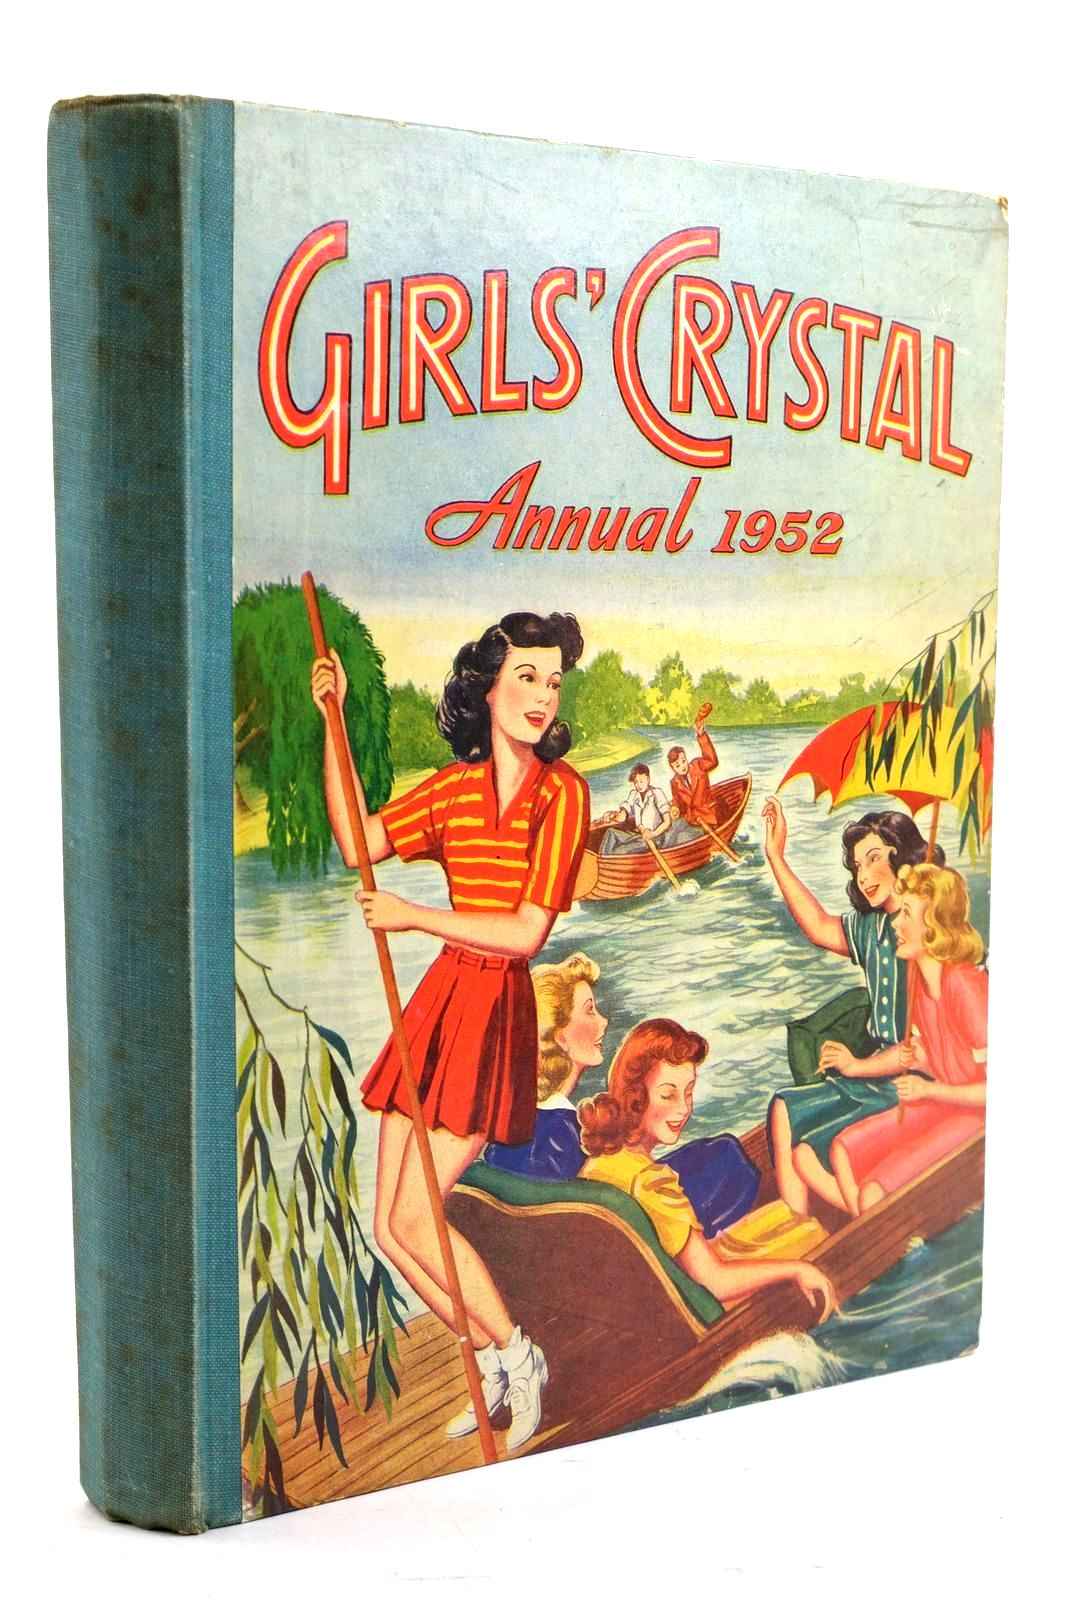 Photo of GIRLS' CRYSTAL ANNUAL 1952 published by The Amalgamated Press (STOCK CODE: 1321002)  for sale by Stella & Rose's Books